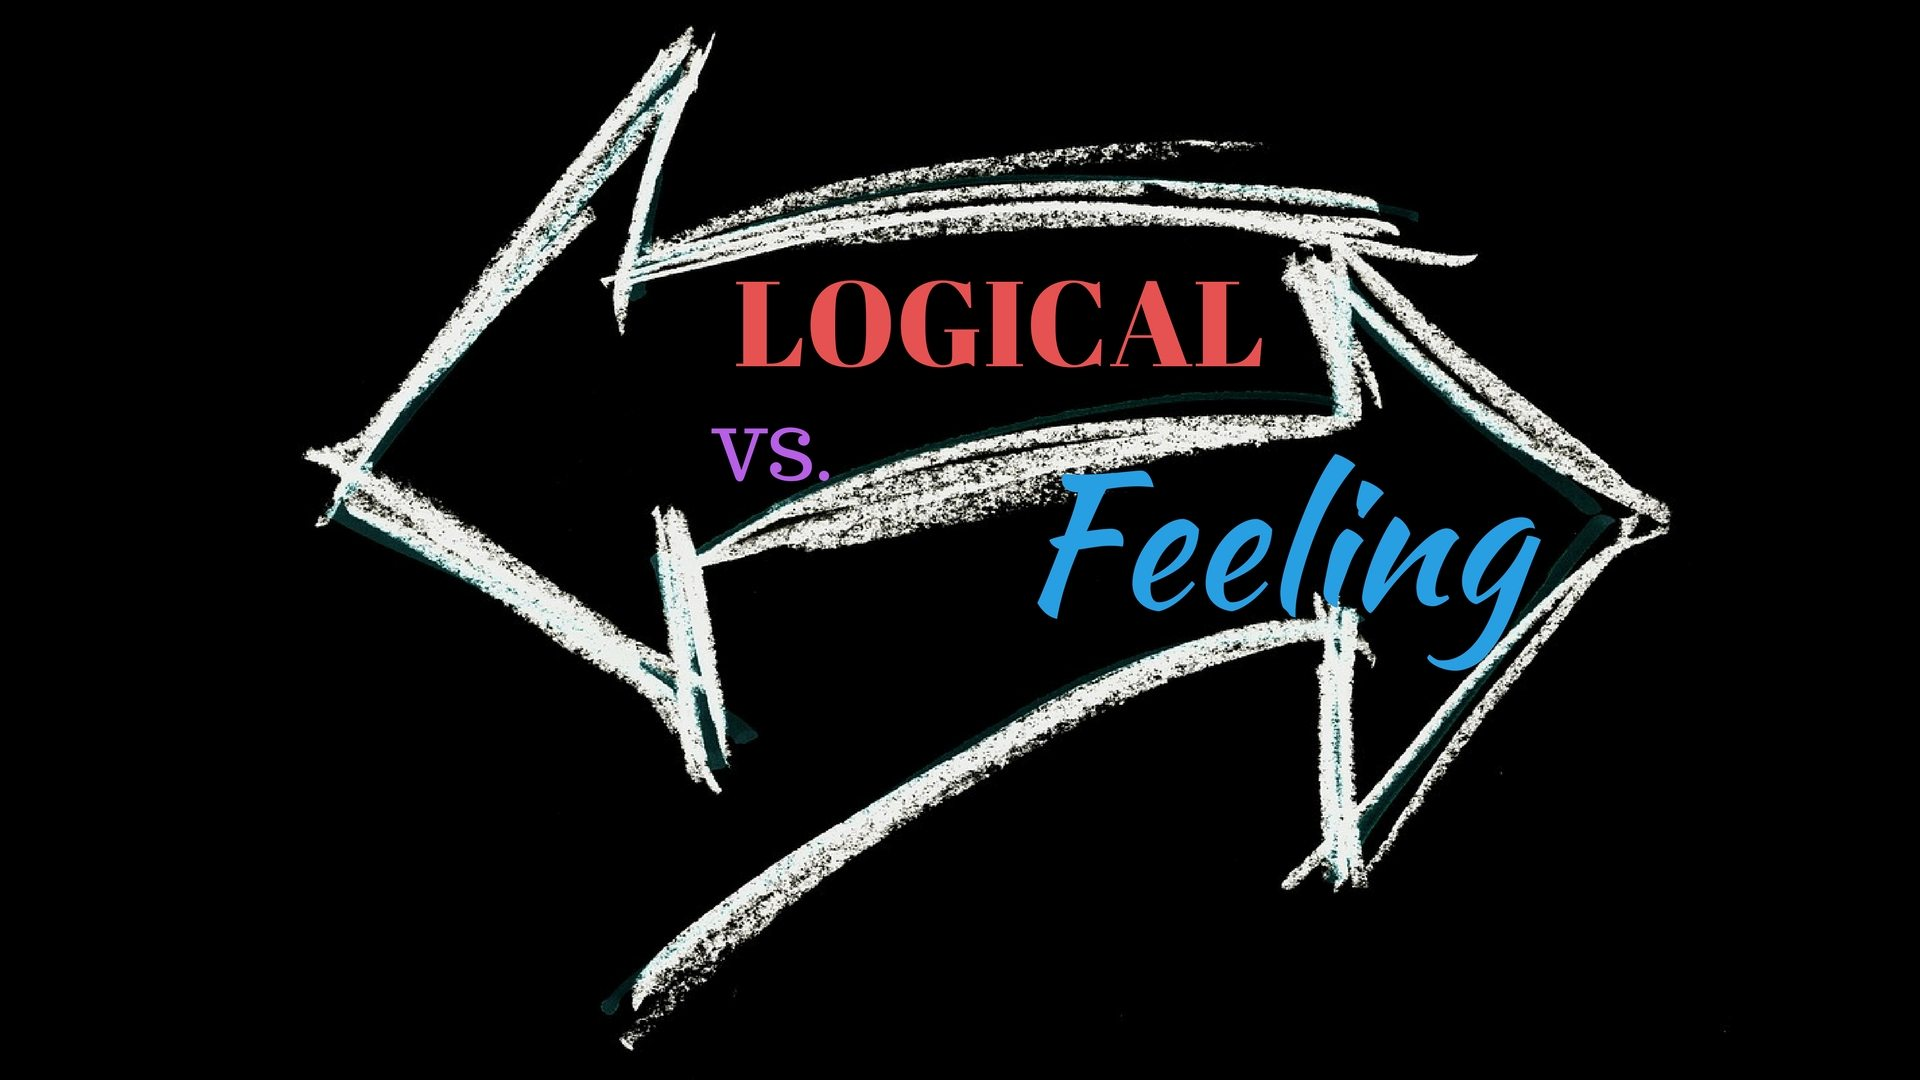 Logical VS Feeling - Pixabay - Canva